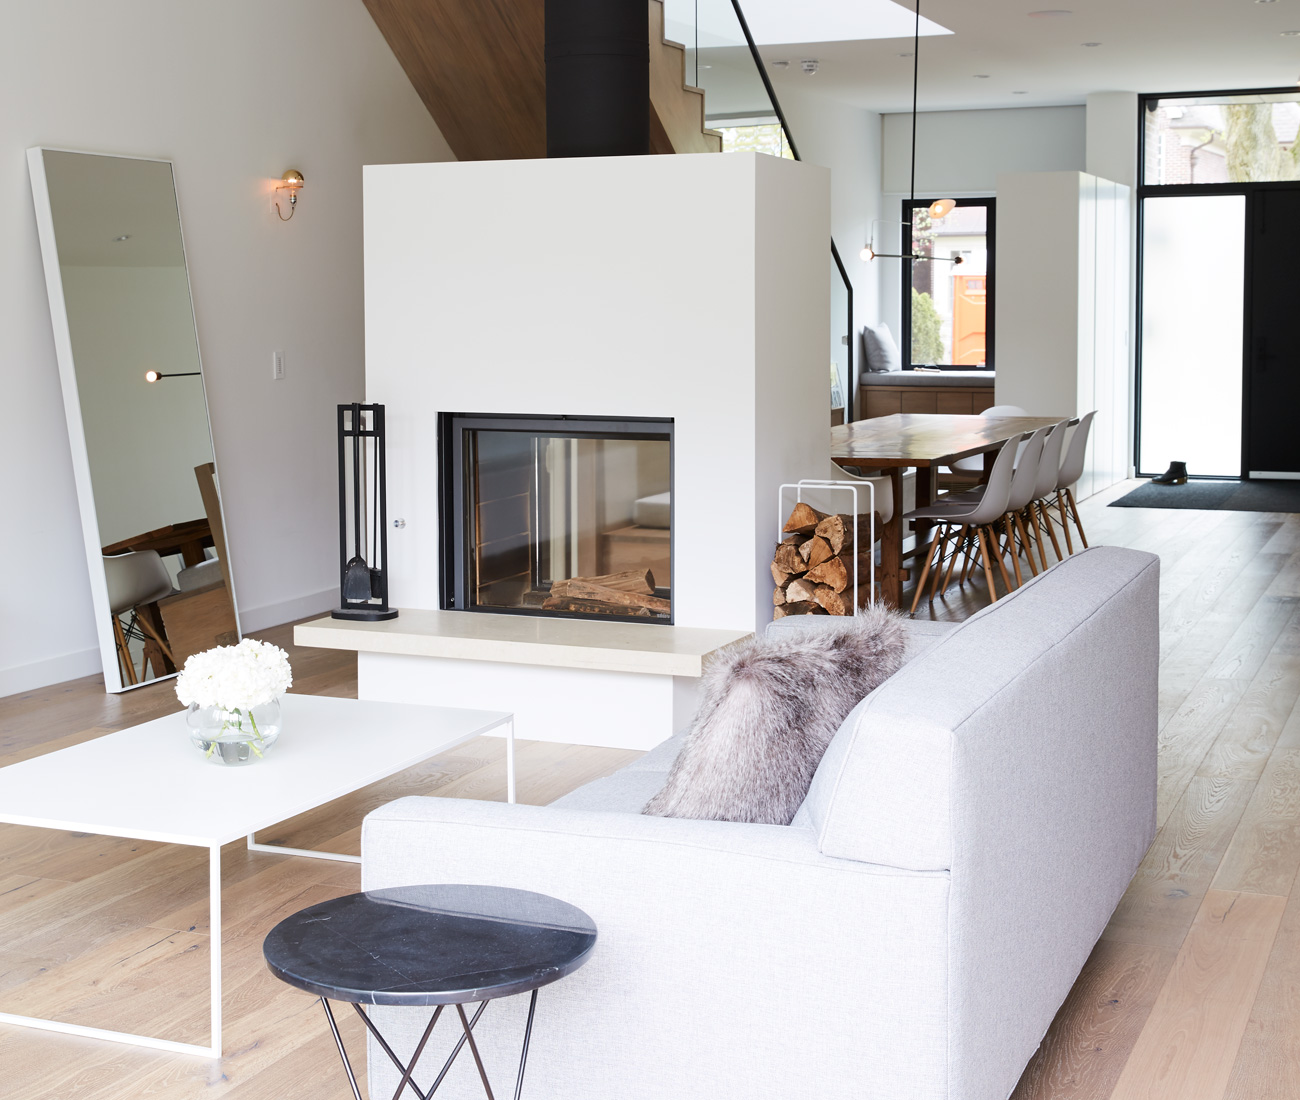 Accustomed To Airy Loft Living The Young Family Who Built This 5 Bedroom Home In Leaside Were Reluctant Throw Up Walls Between Es